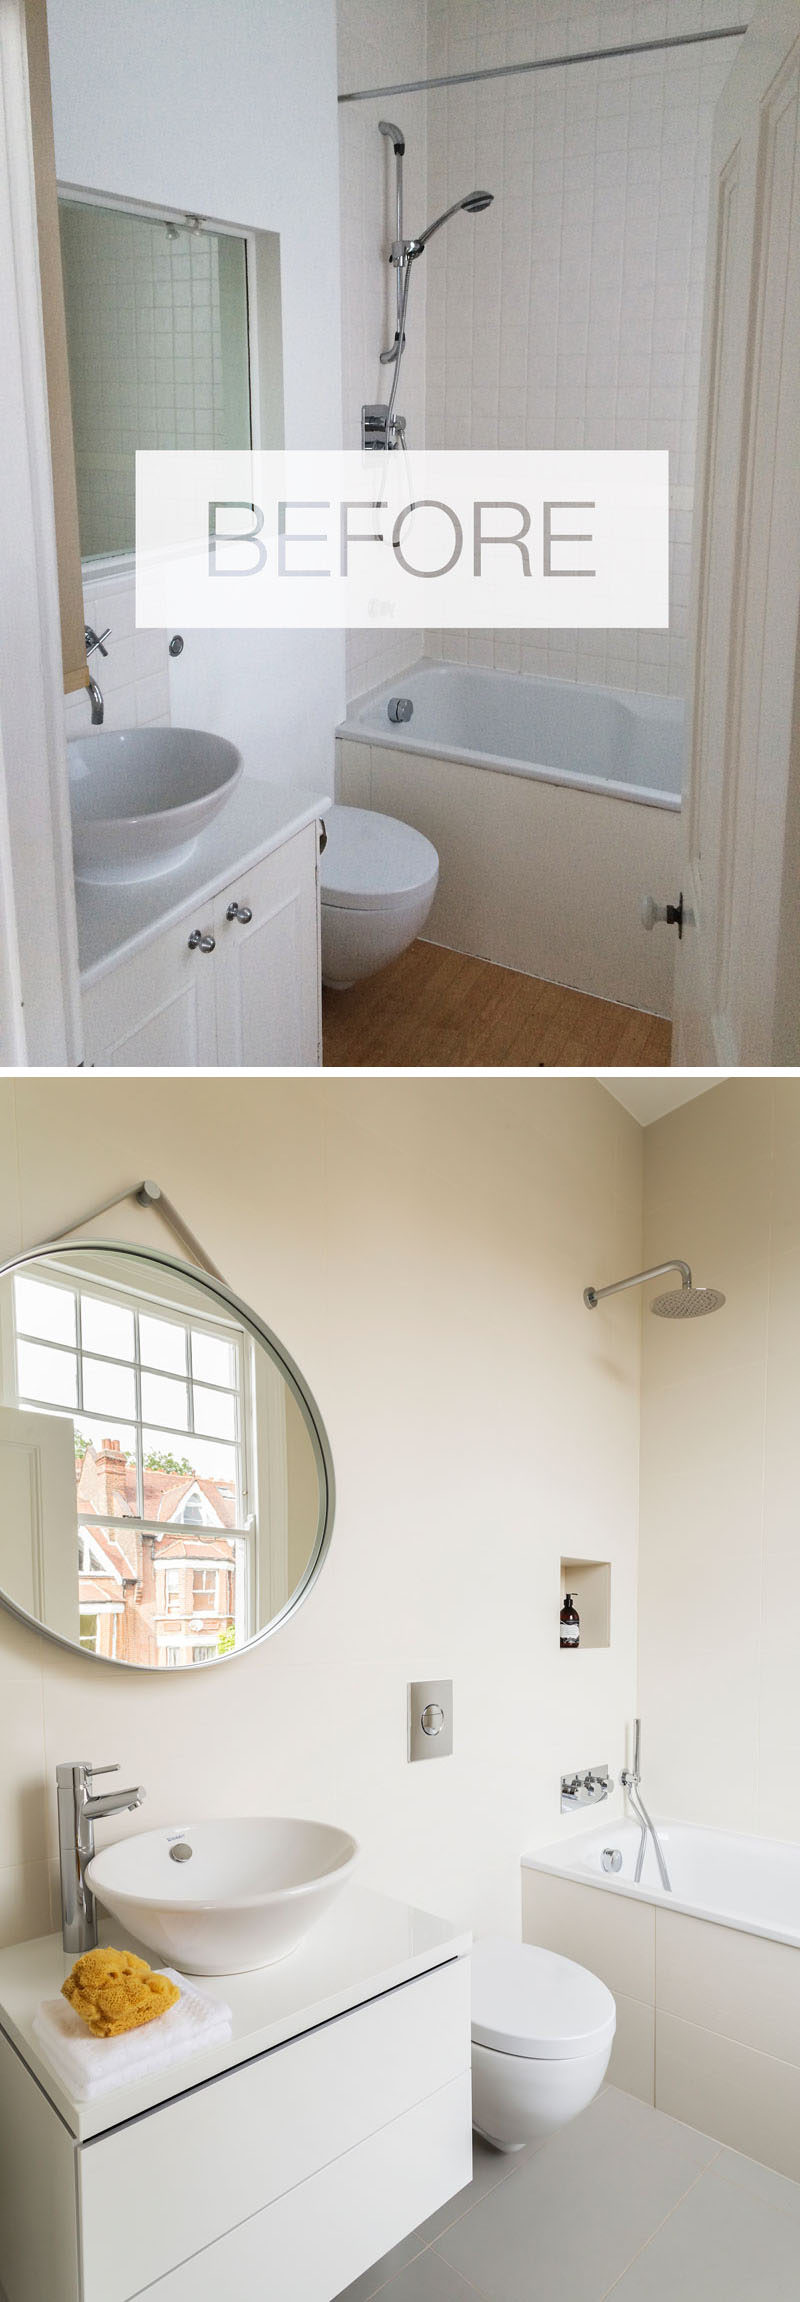 This updated bathroom design includes new flooring, a wall hung vanity unit, a round hanging mirror and a new bath with a rainfall shower head. #ModernBathroom #RenovatedBathroom